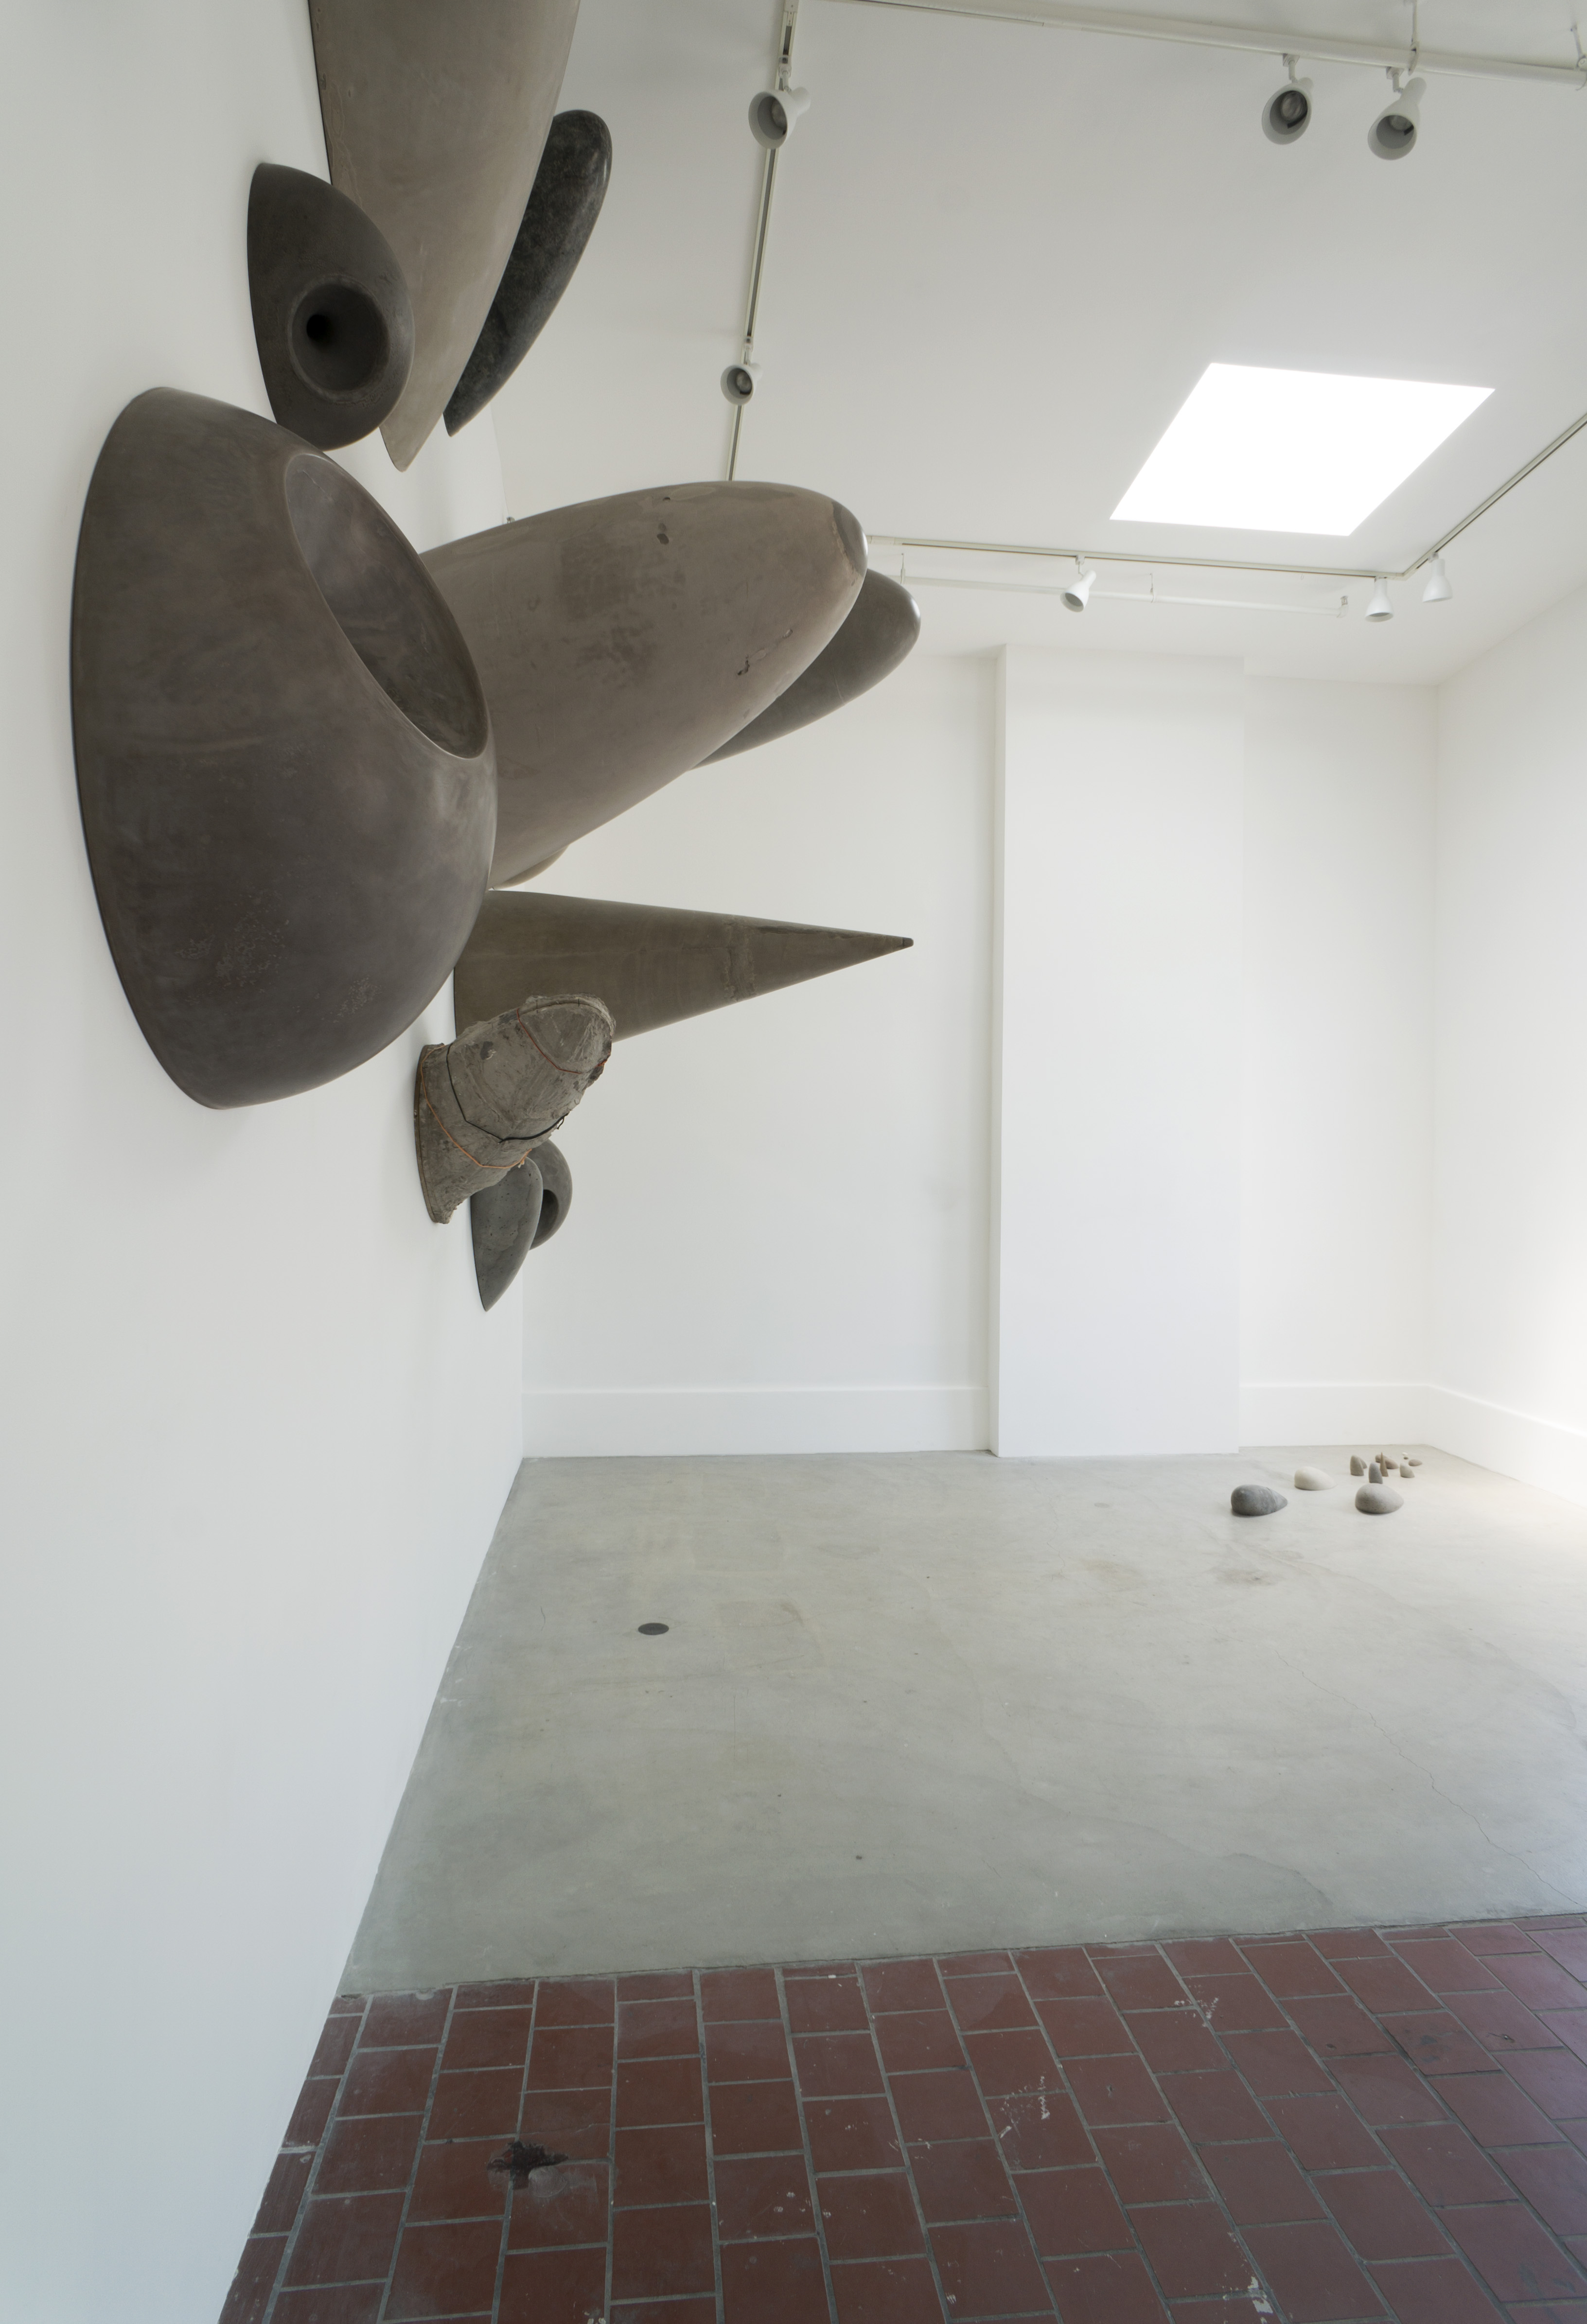 Tom Driscoll at ICE Gallery